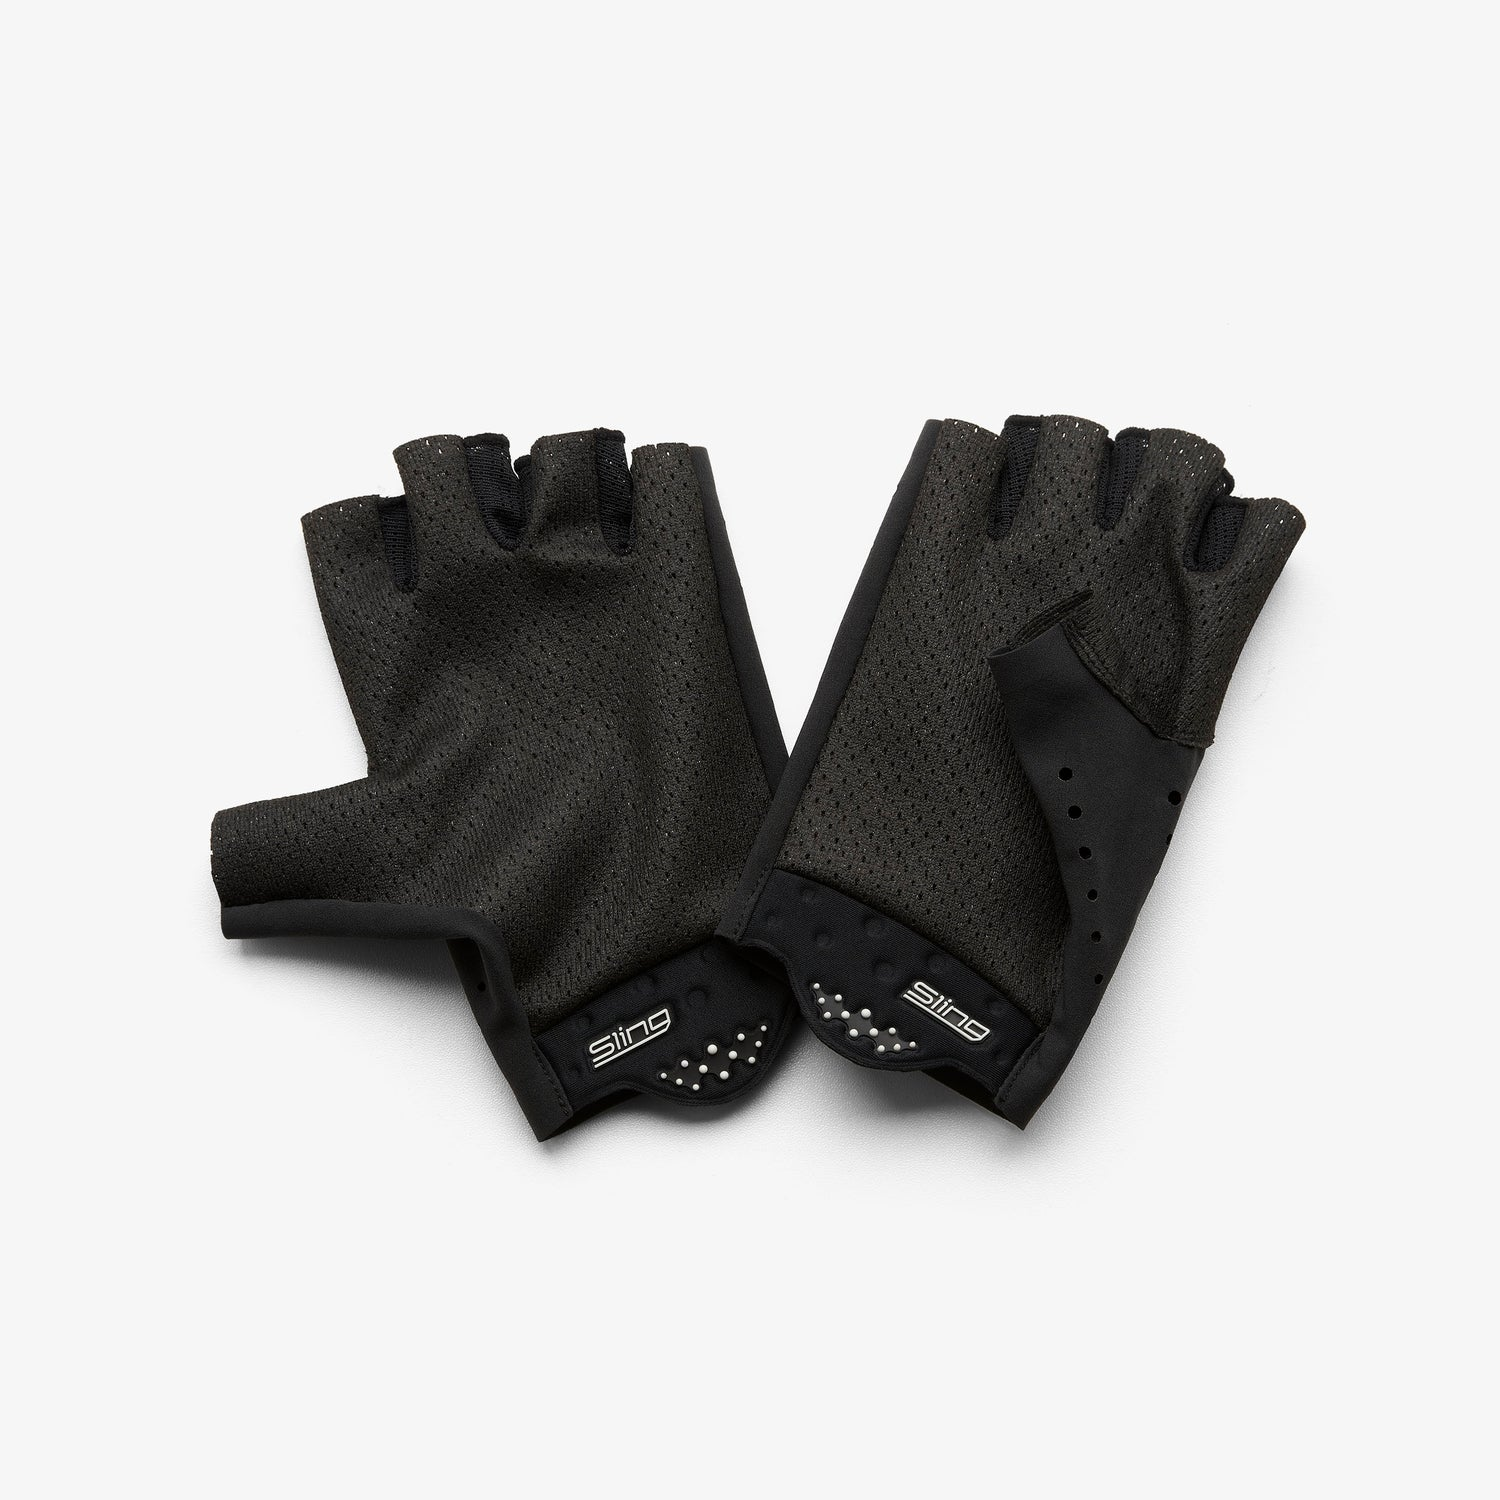 SLING Short Finger Gloves Black